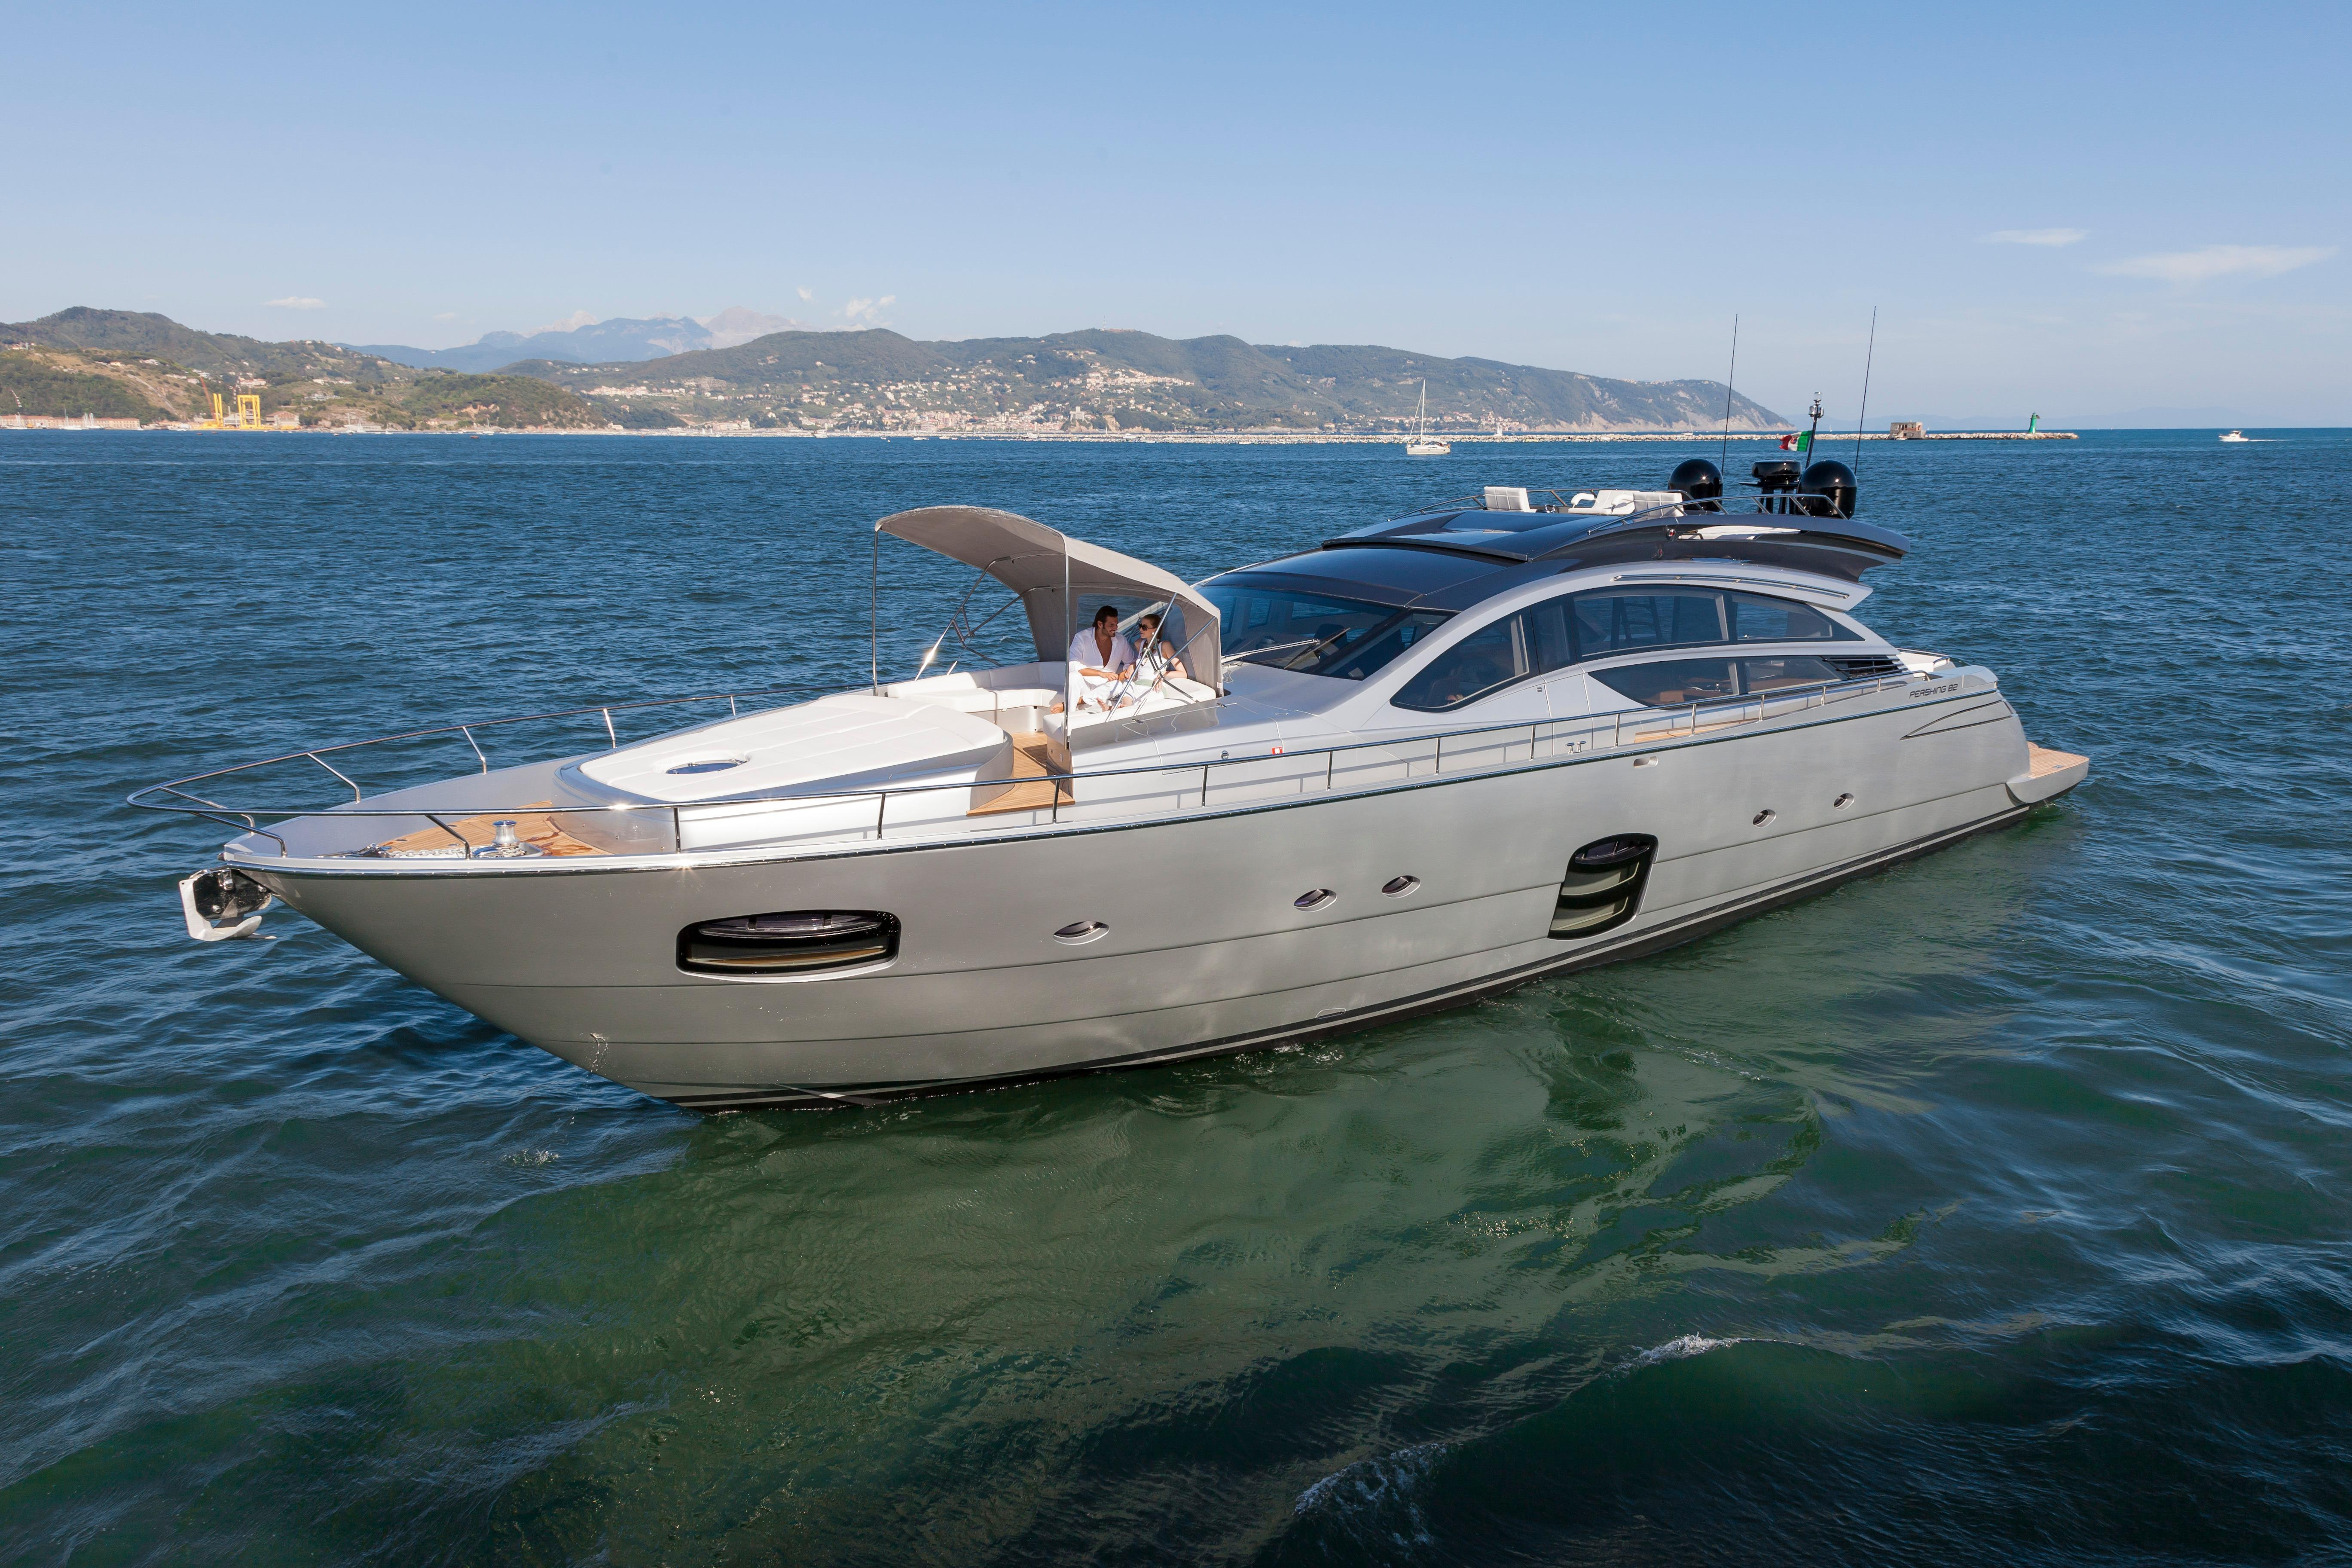 2015 Pershing 82 - Profile